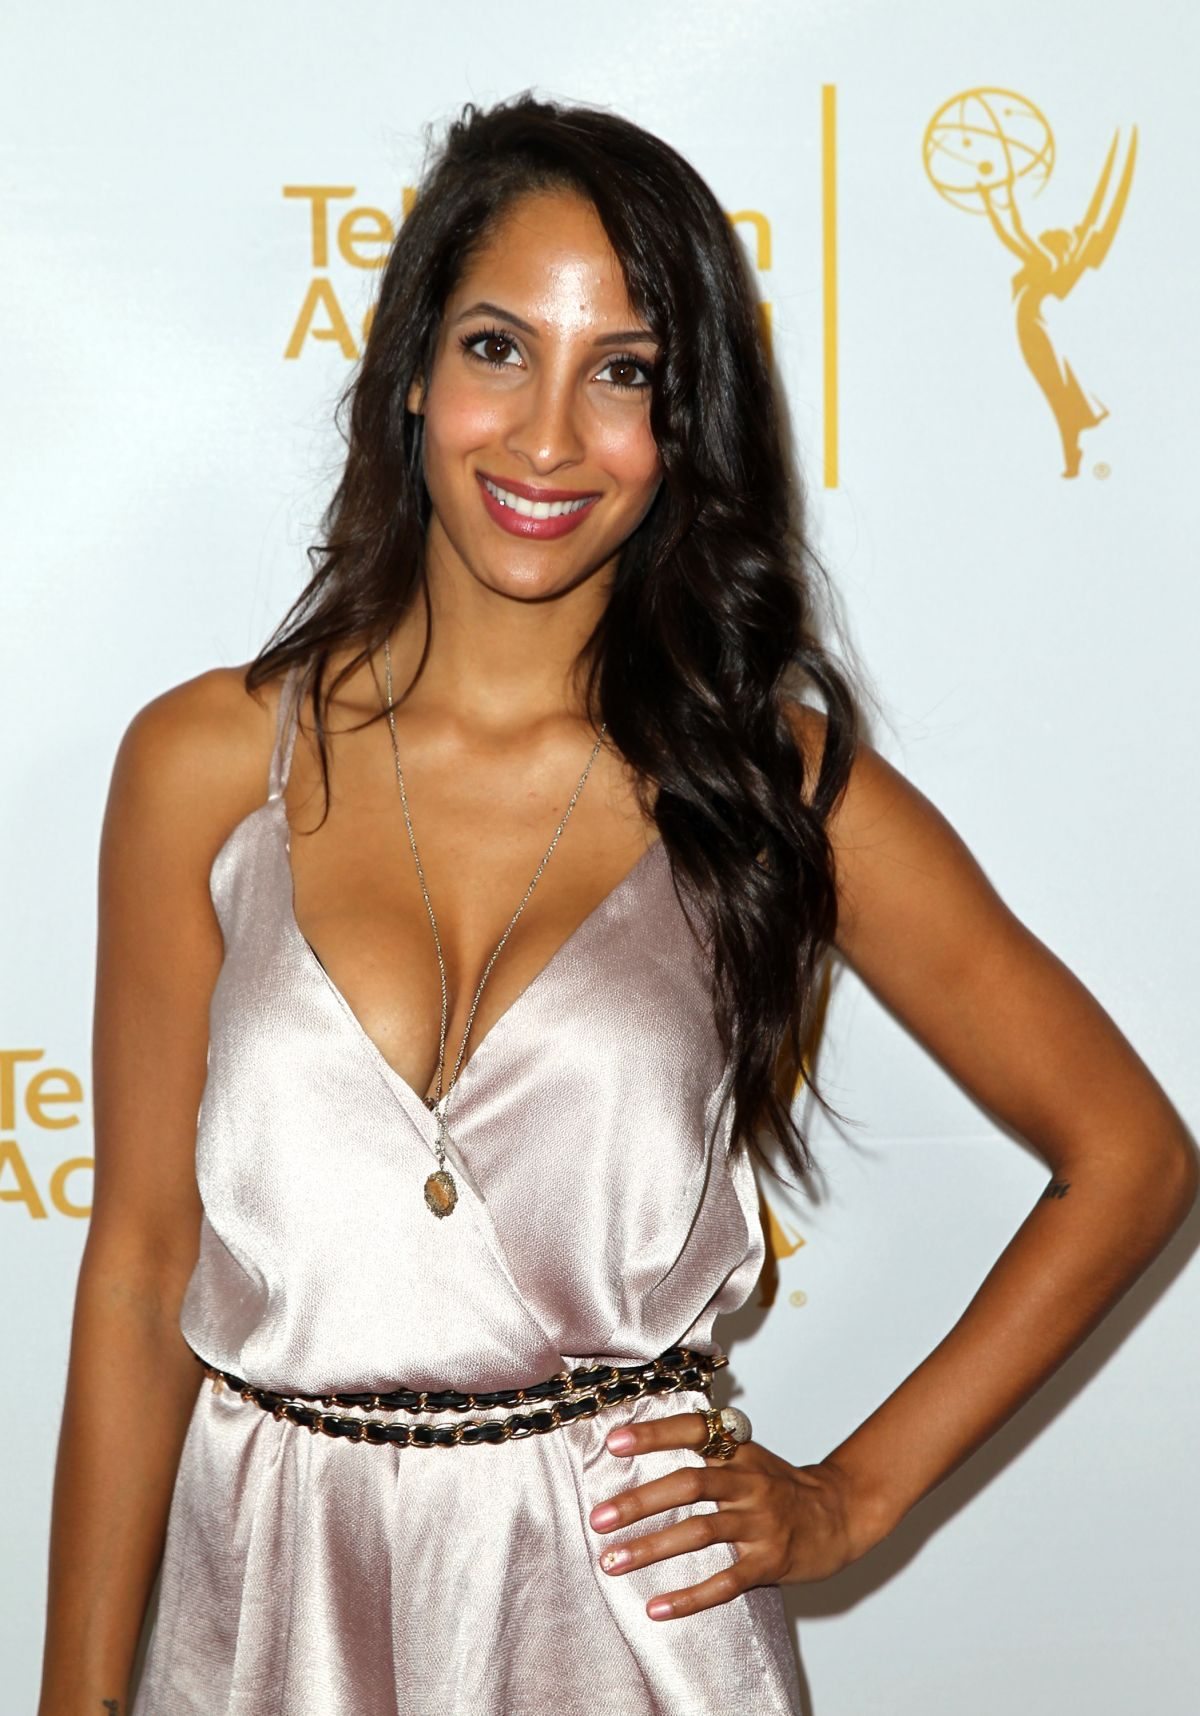 Christel Khalil - Alchetron, The Free Social Encyclopedia